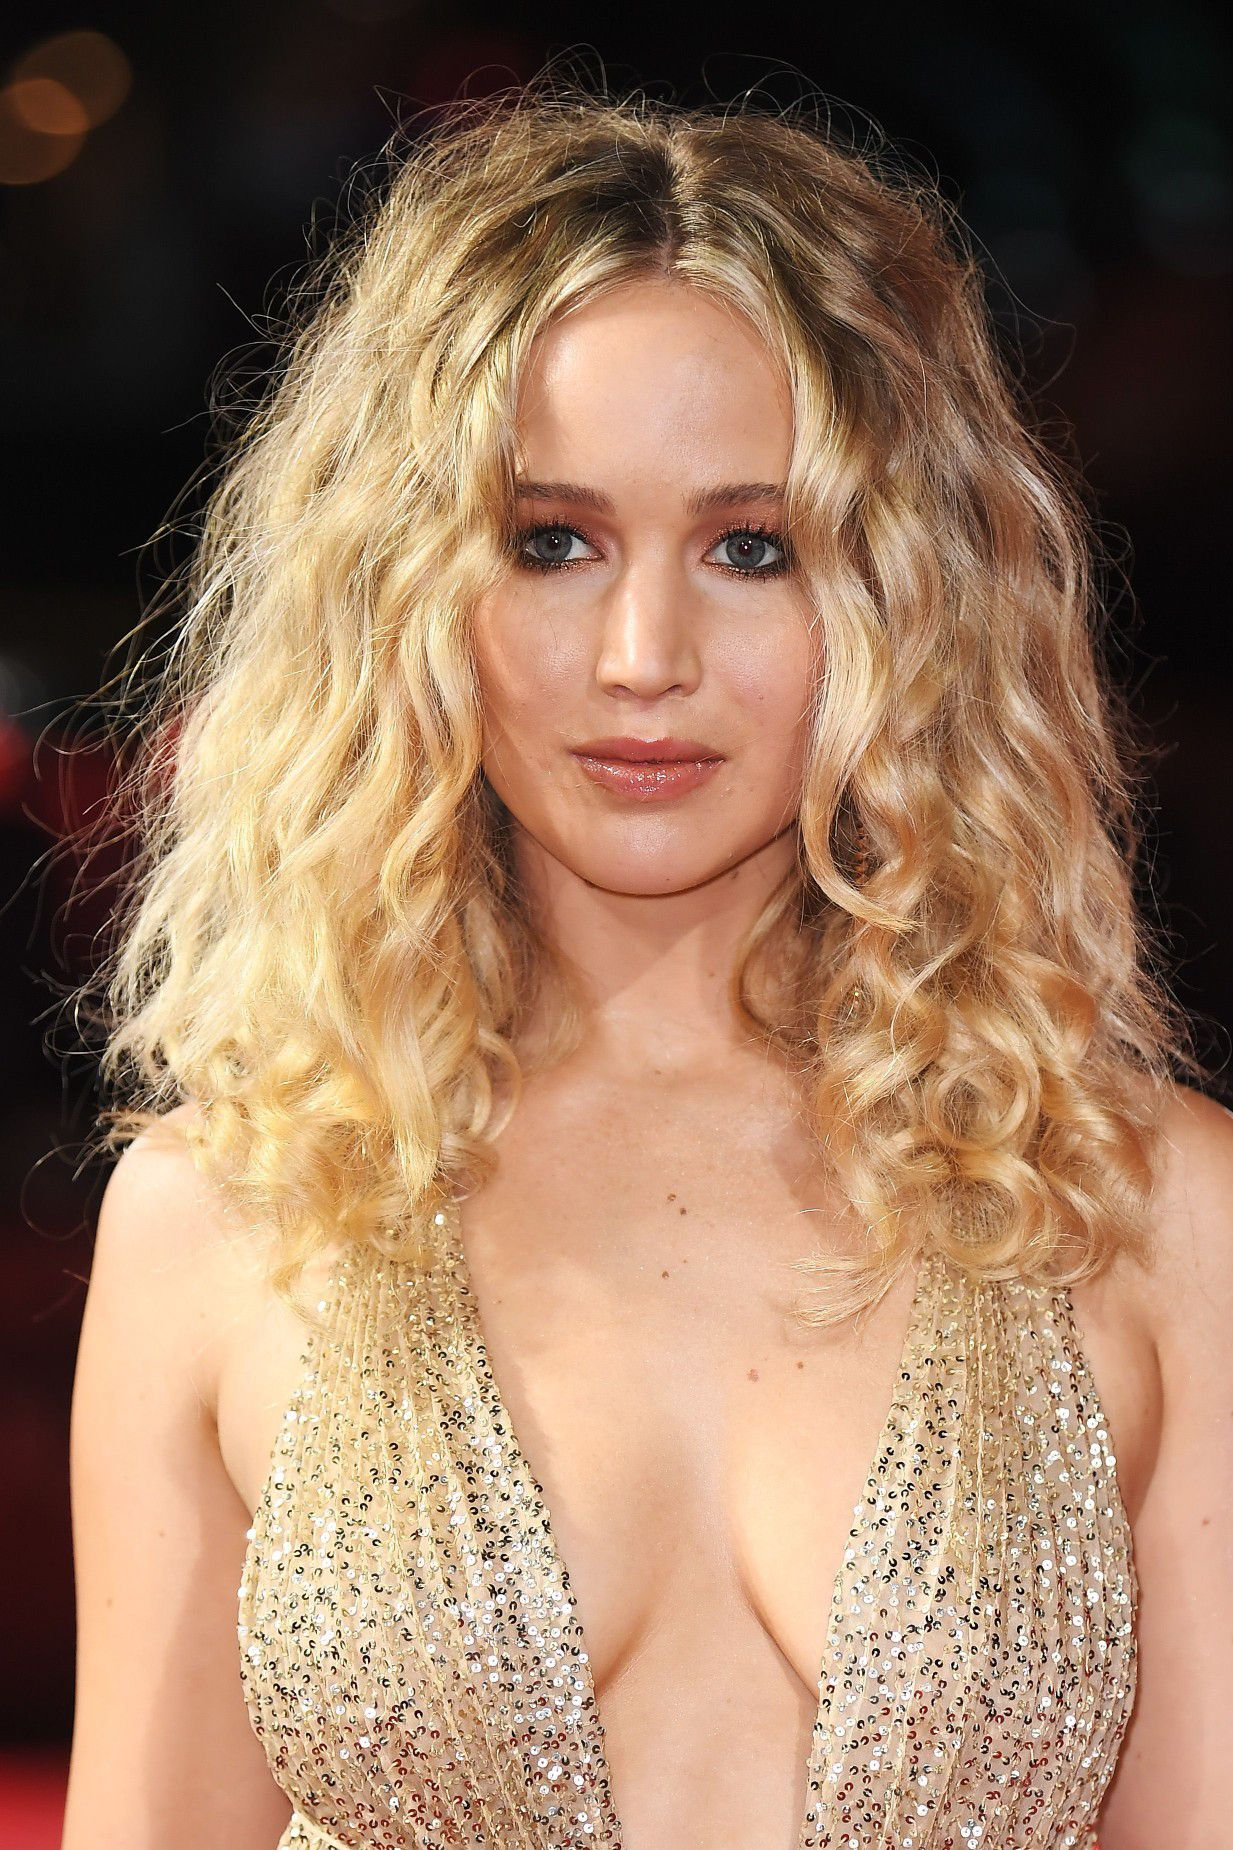 jennifer-lawrence-cleavage-at-red-sparrow-premiere-in-london-4598